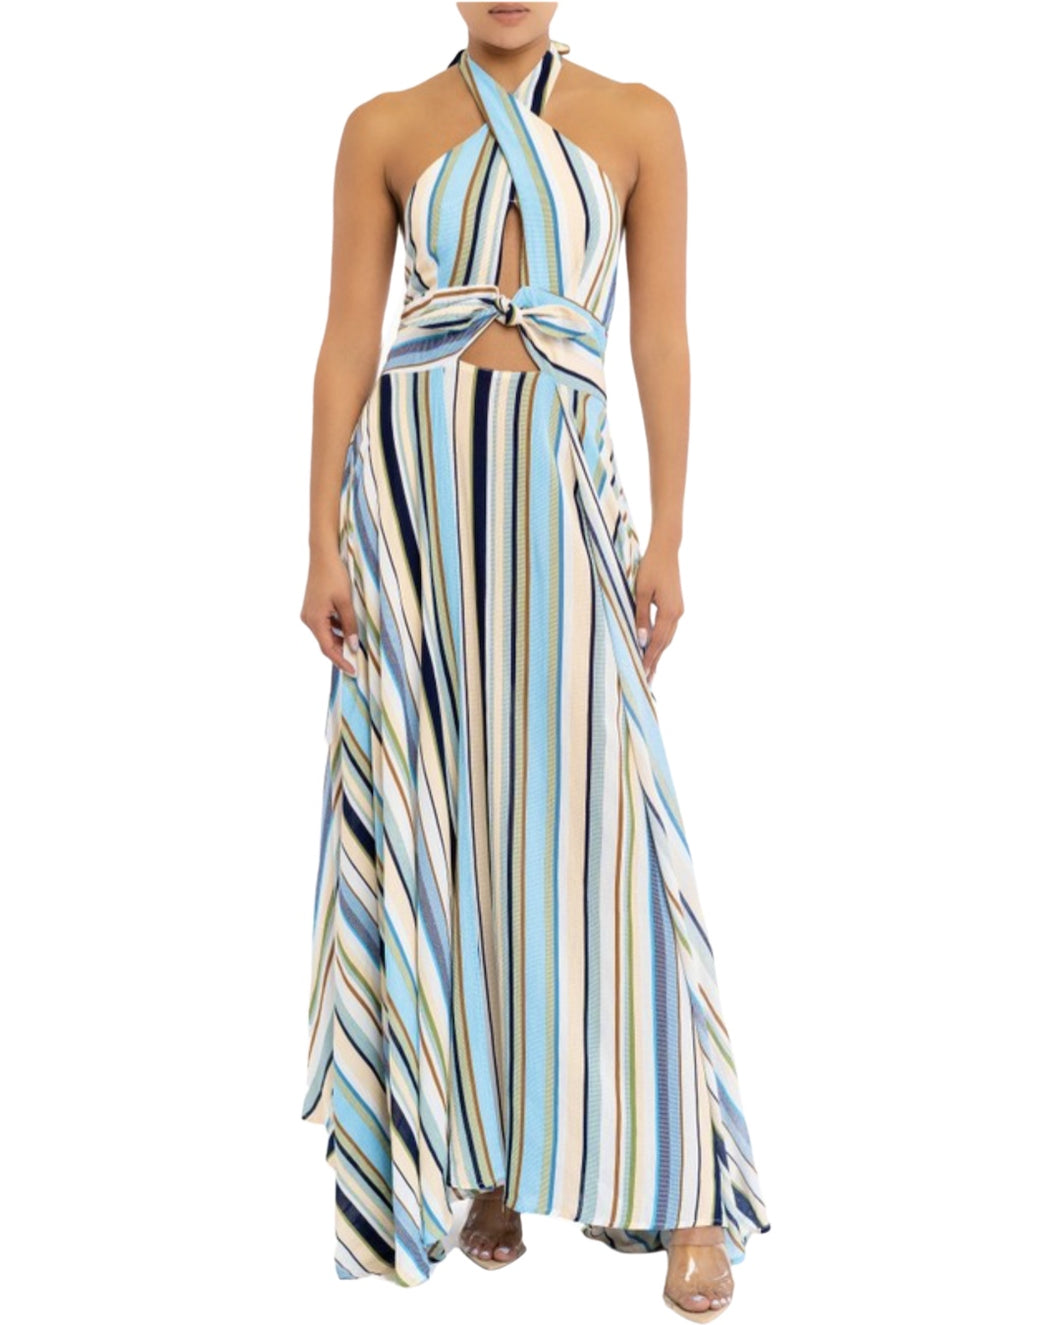 BLUE STRIPE HALTER DRESS